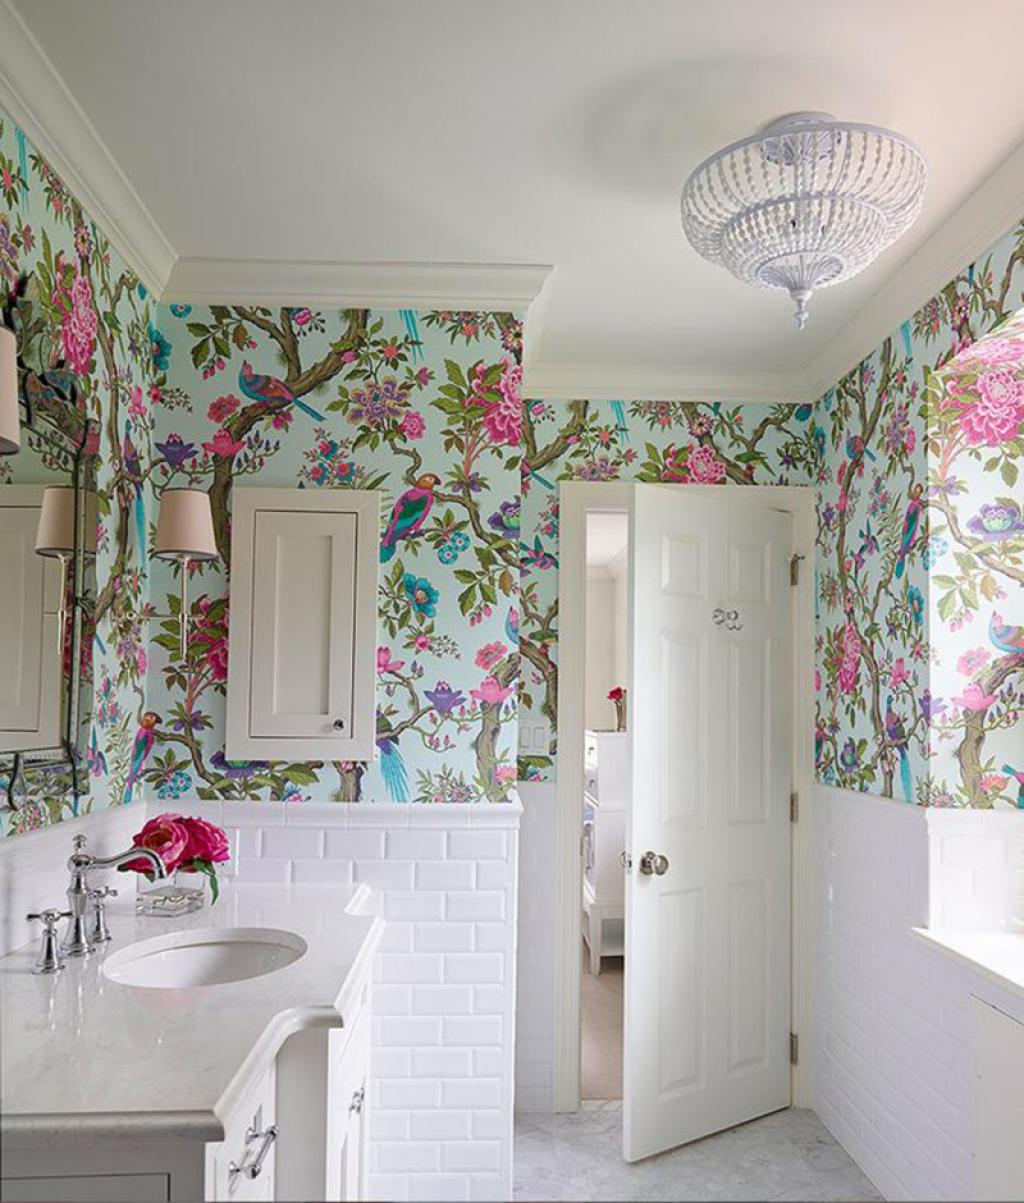 Coolcontemporary Bathroom Designs Ideas For Small Apartment In Bathroom Design 24 Inspiring: Floral Royal Bathroom Wallpaper Ideas On Small White Modern Bathroom